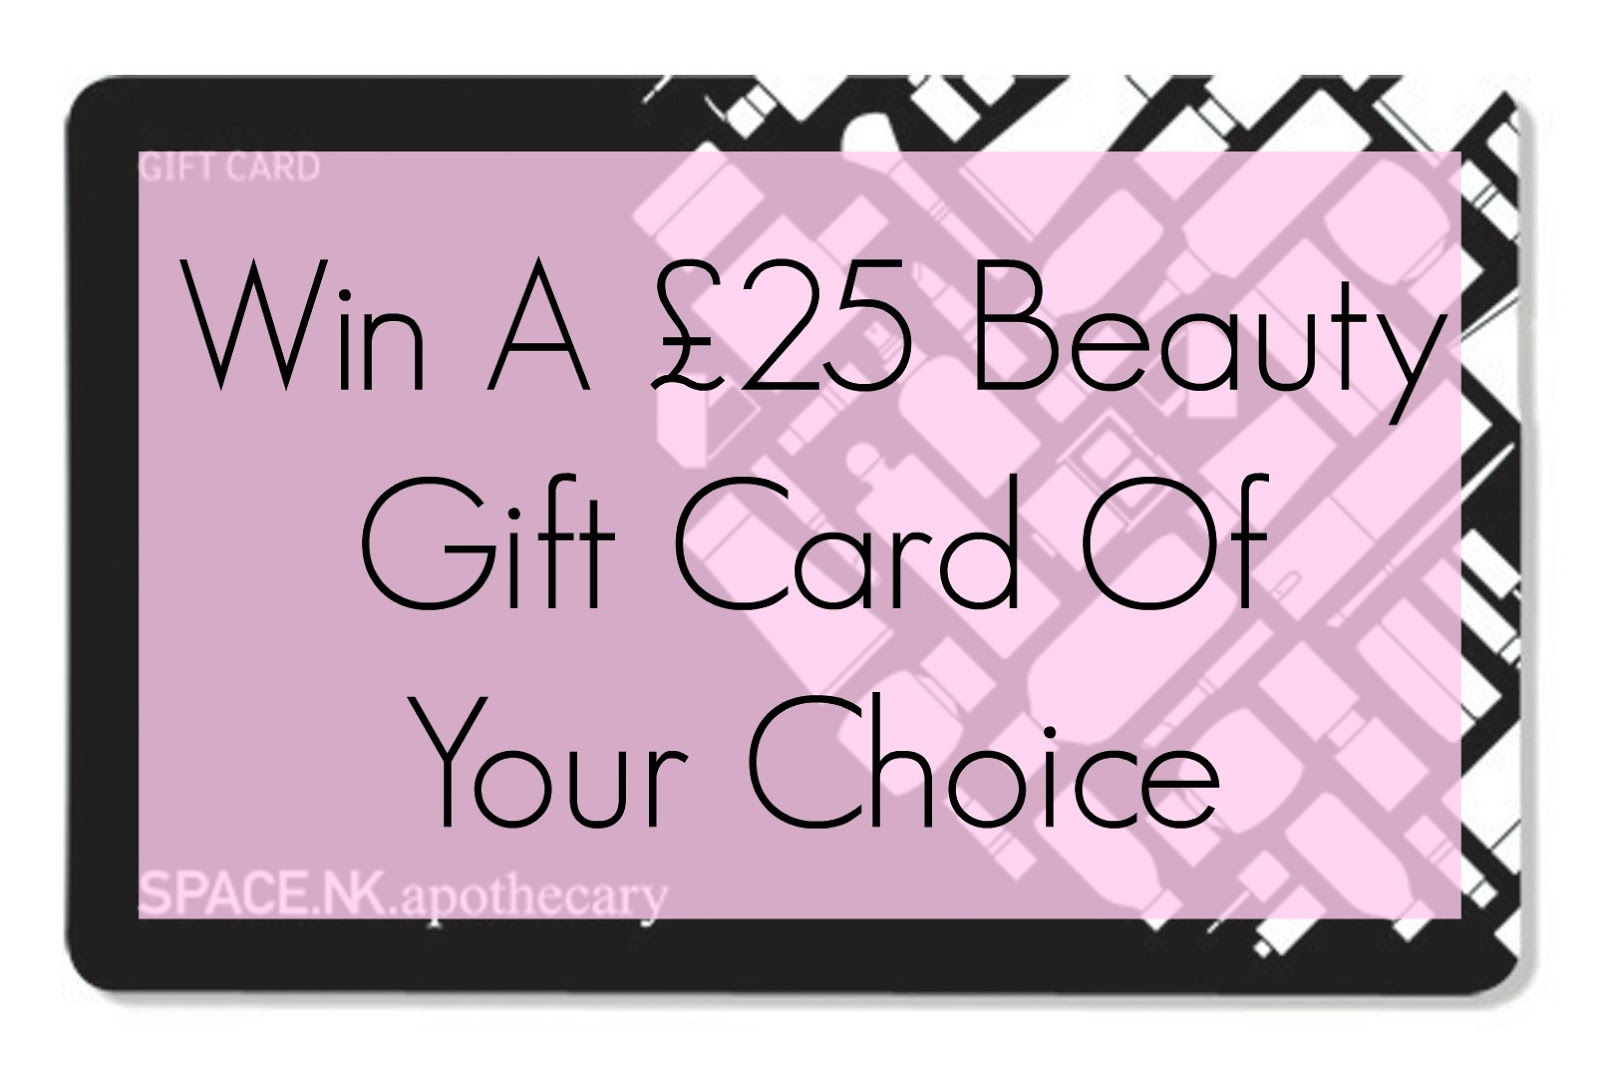 win a £25 beauty gift card of your choice